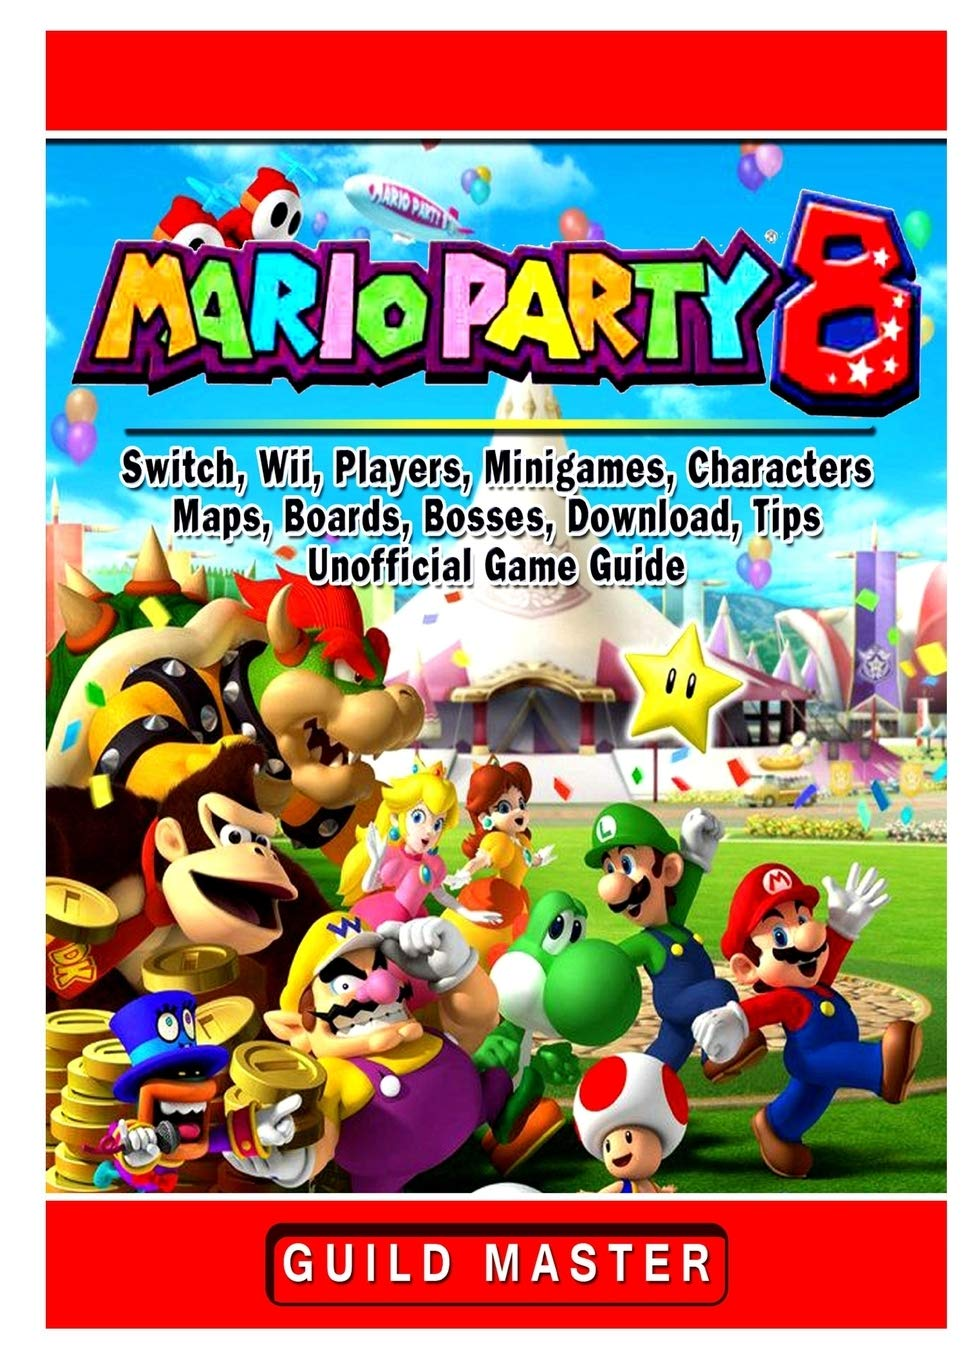 Super Mario Party 8, Switch, Wii, Players, Minigames, Characters ...